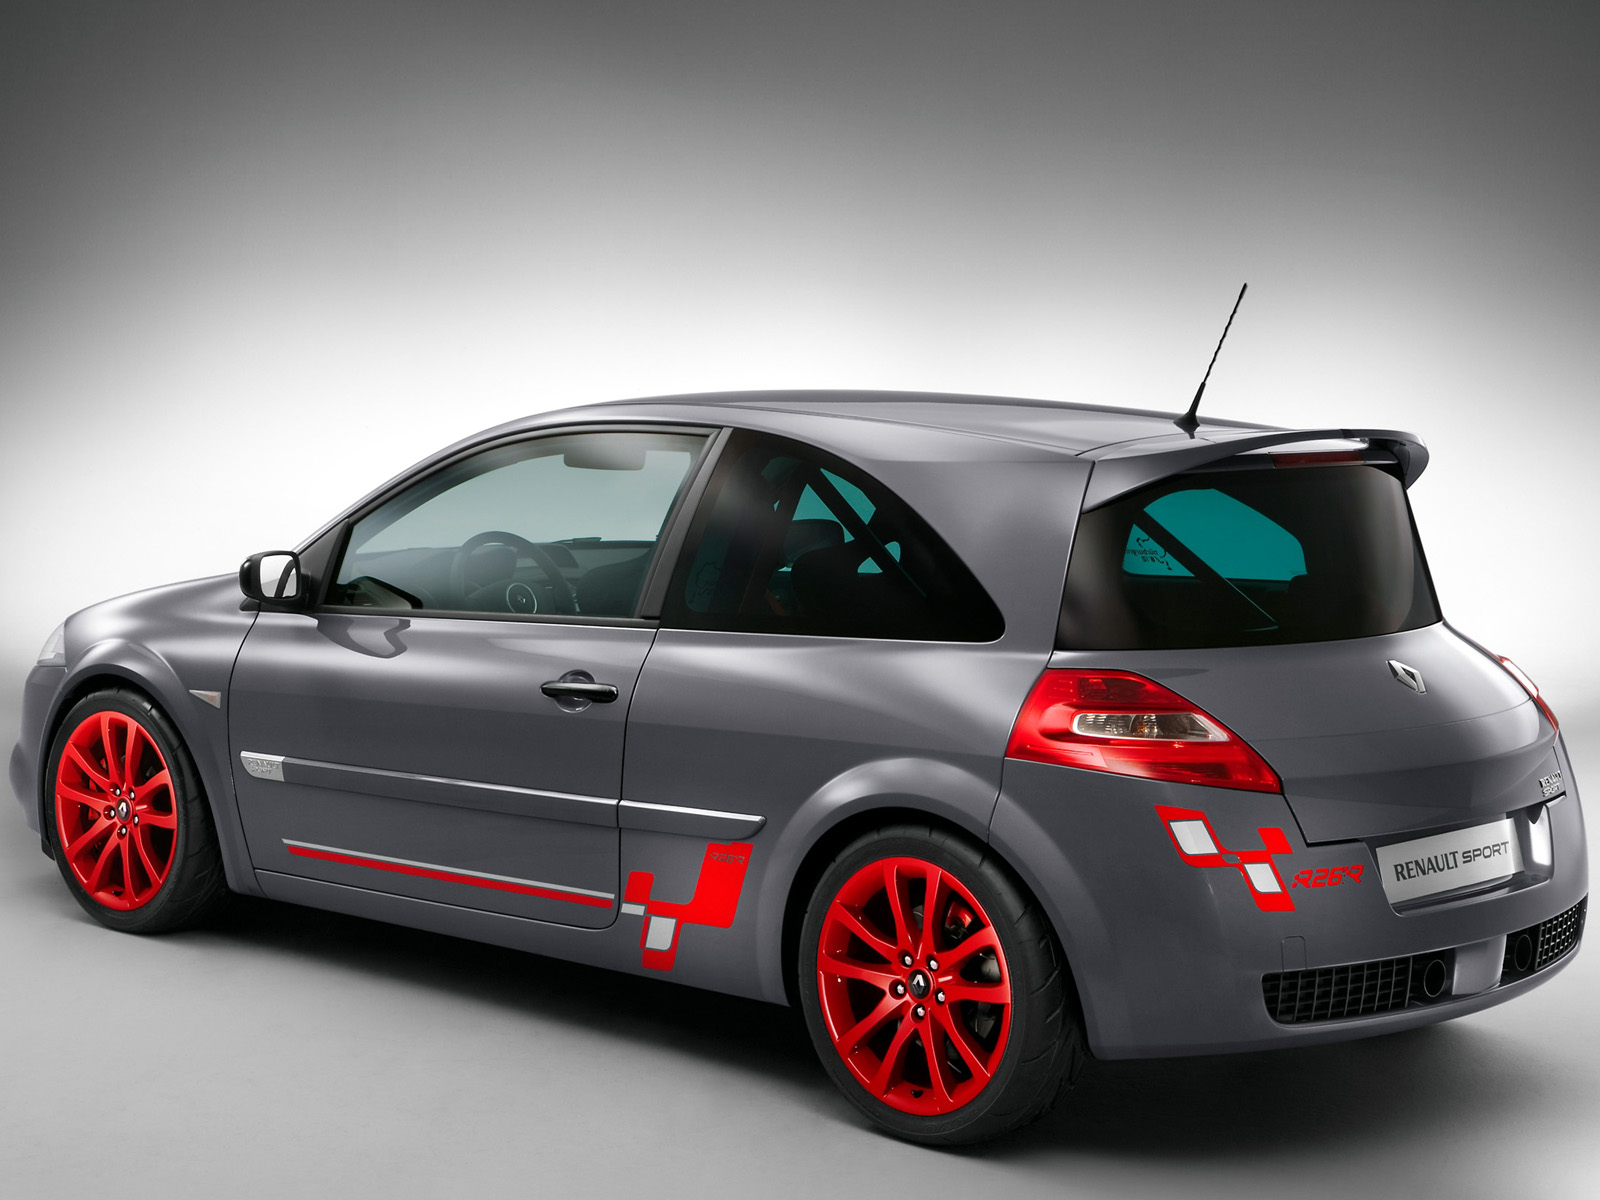 2008 renault megane rs r260 r r260 j wallpaper 1600x1200 167256 wallpaperup. Black Bedroom Furniture Sets. Home Design Ideas